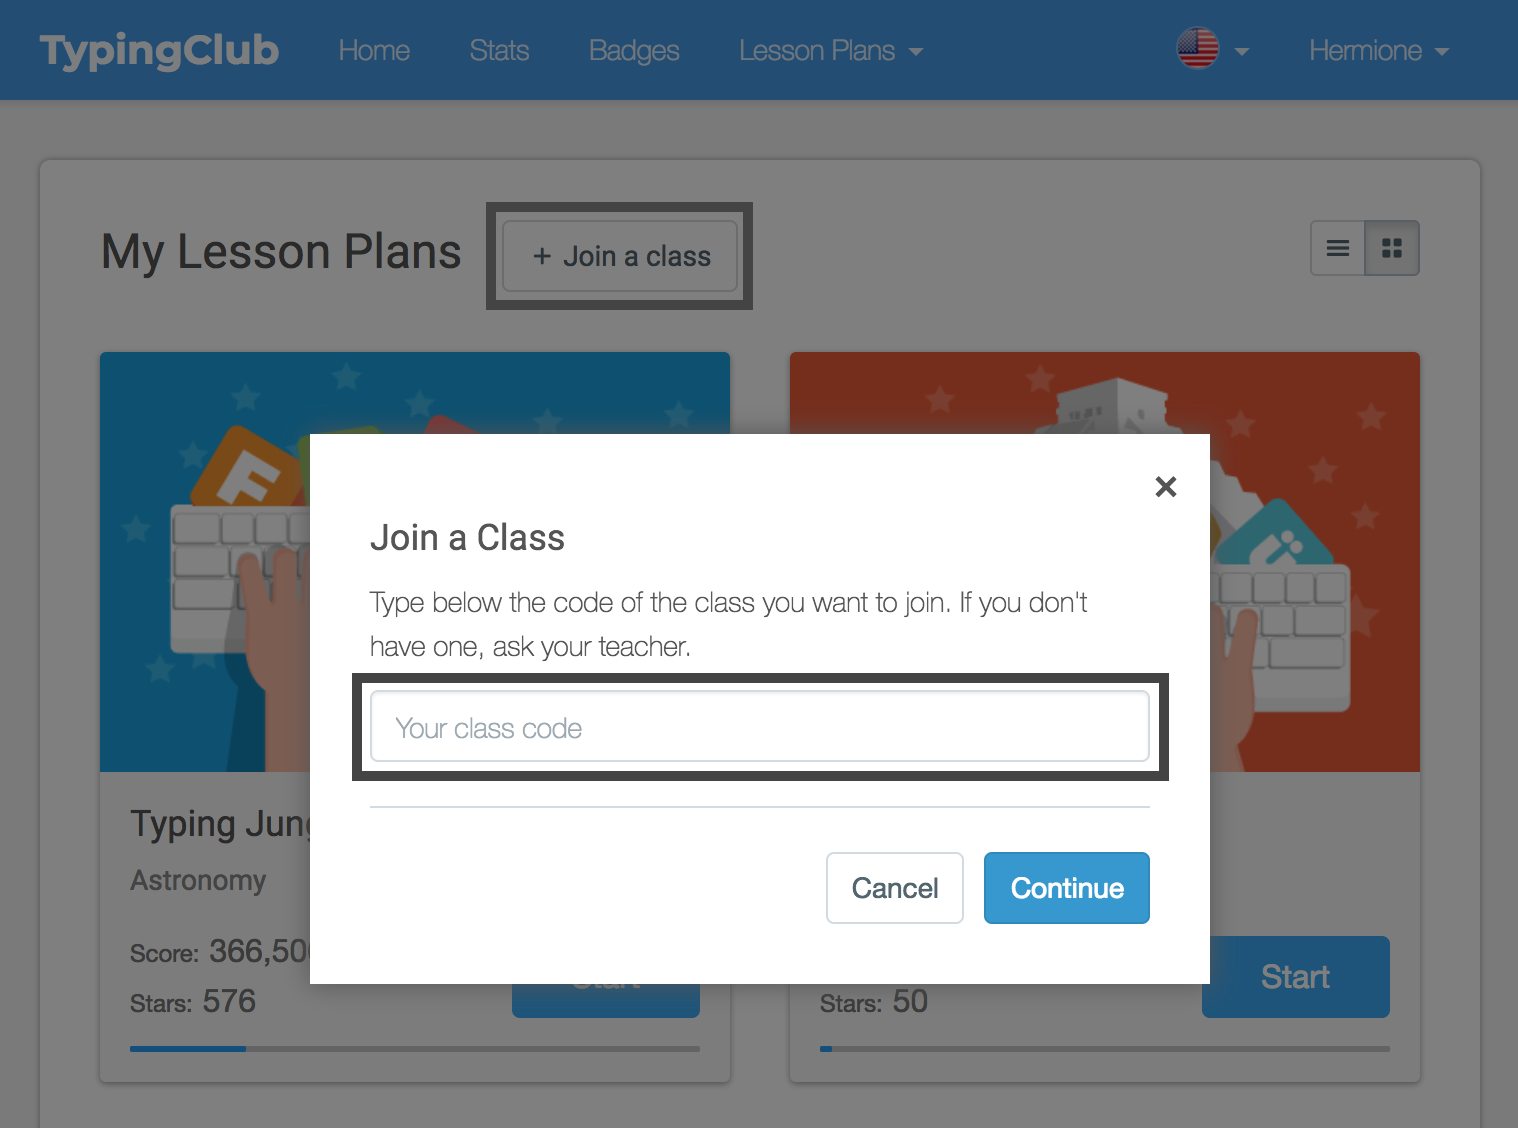 From The Student Interface There Will Be A Join A Cloption On The Homepage Once Clicked The Student Will Be Able To Enter The Clcode In Order